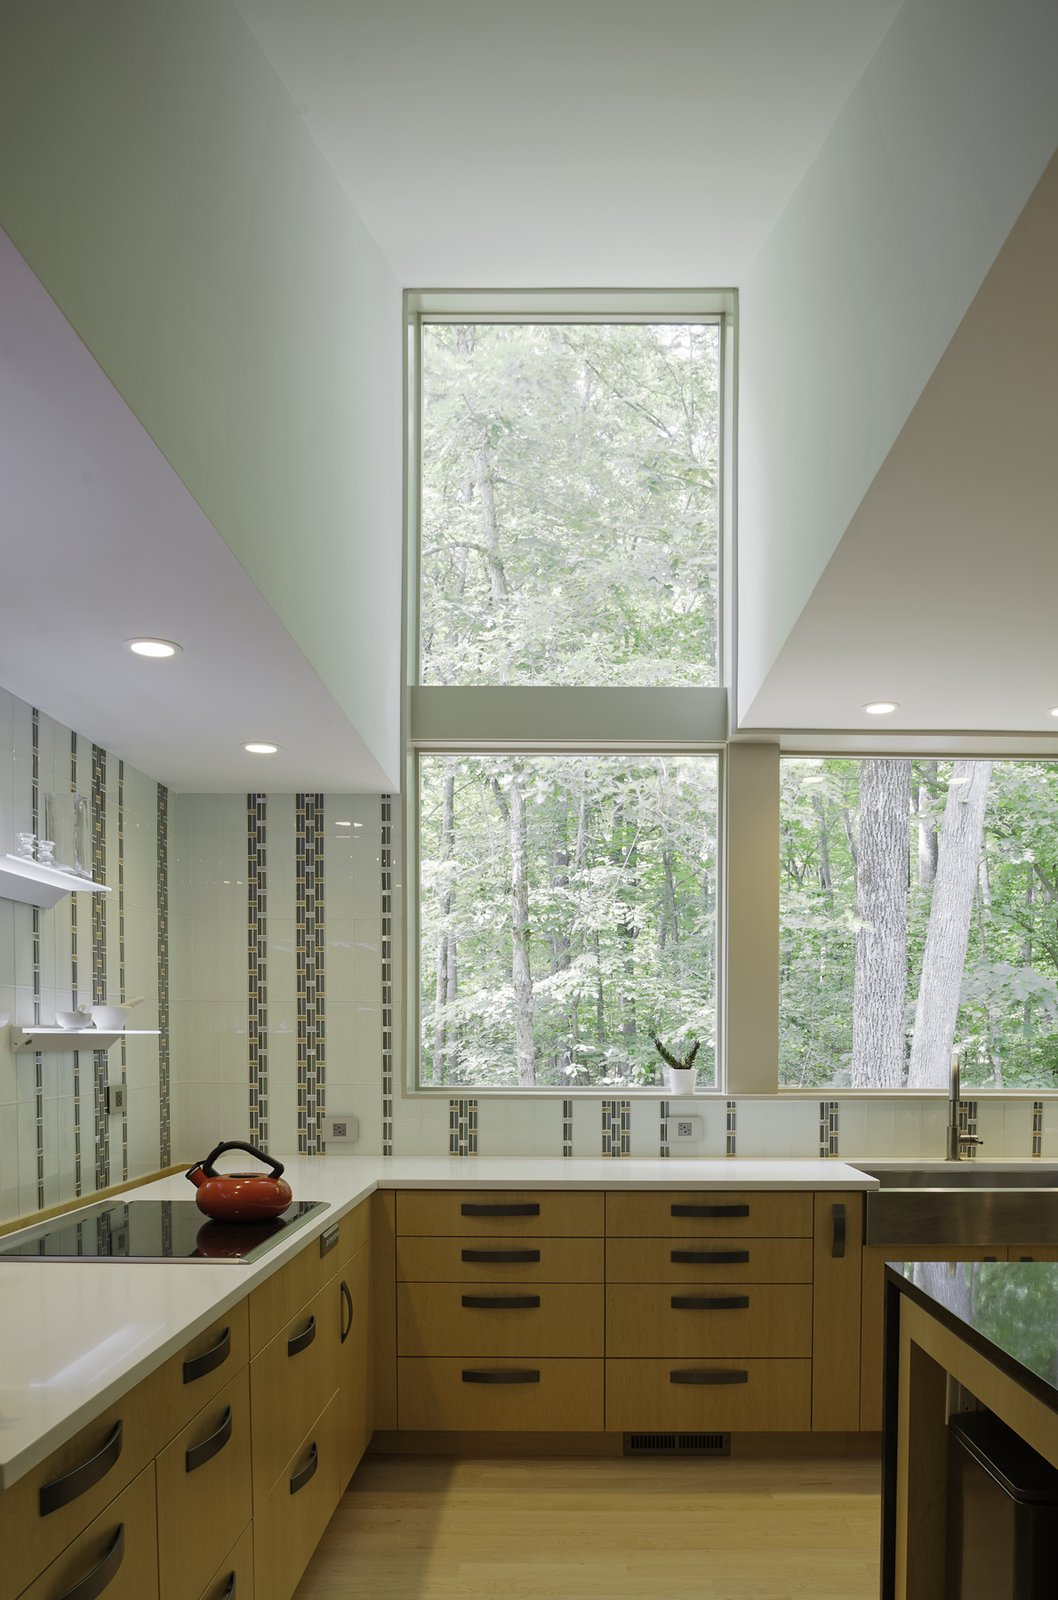 The kitchen features a sink from Kohler, a faucet by Brizo, and a cooktop from Wolf. The tiles are by Everstone. Courtesy of Richard Leo Johnson / Atlantic Archives Inc.  Shining Examples of Clerestory Windows by Luke Hopping from Streamlined Modern Living in the North Carolina Forest